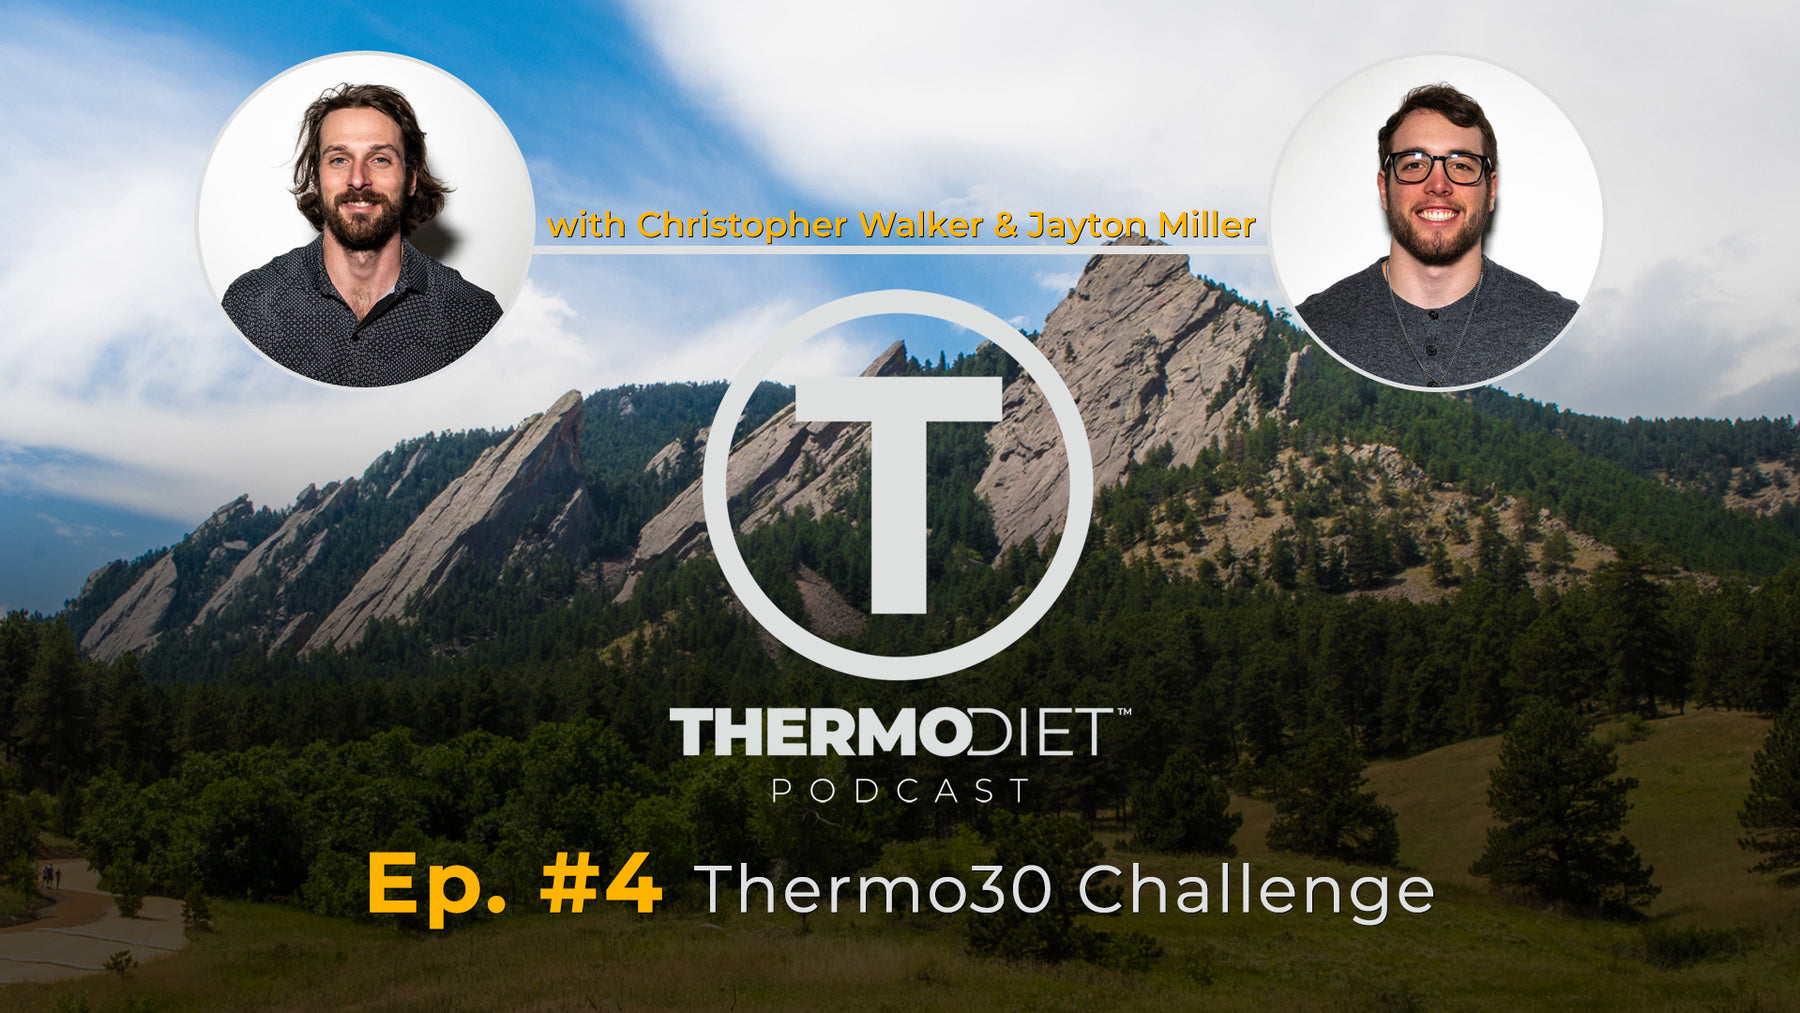 How To Do Thermo 30 - Thermo Diet Podcast Episode 4